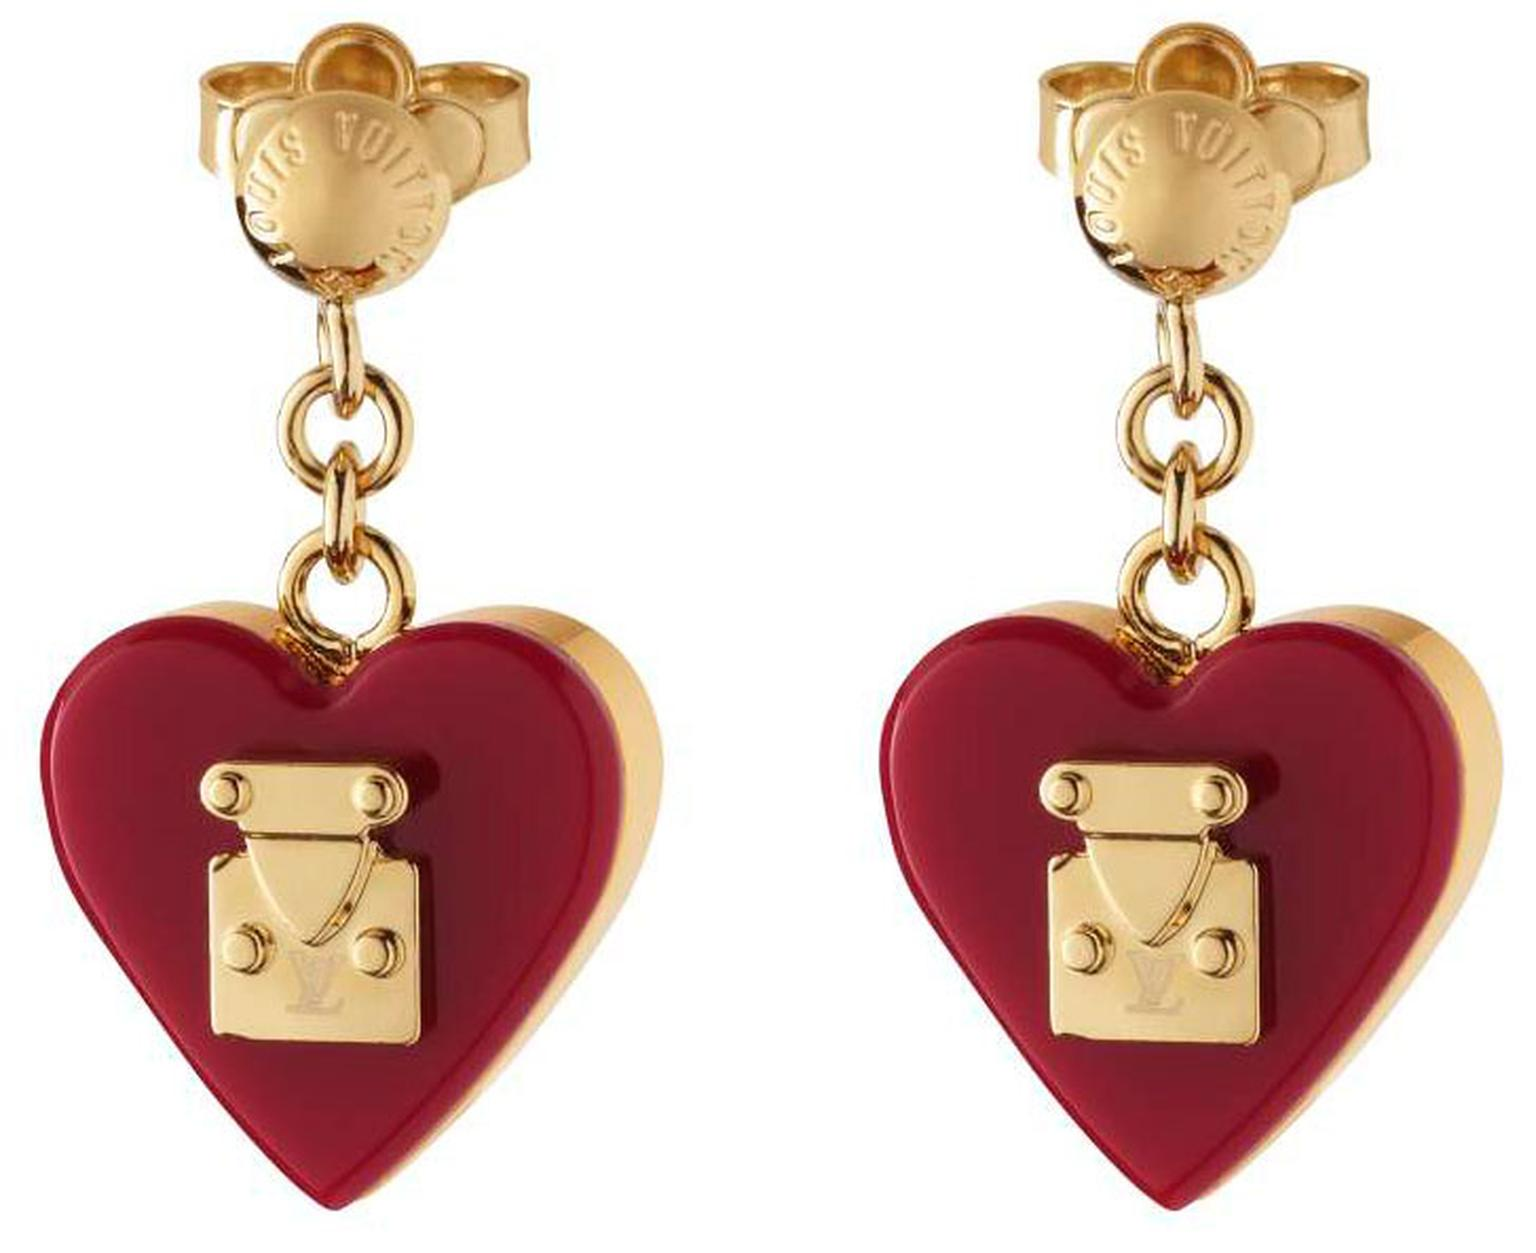 Valentines - Vuitton Lock Me earrings. priced at £270